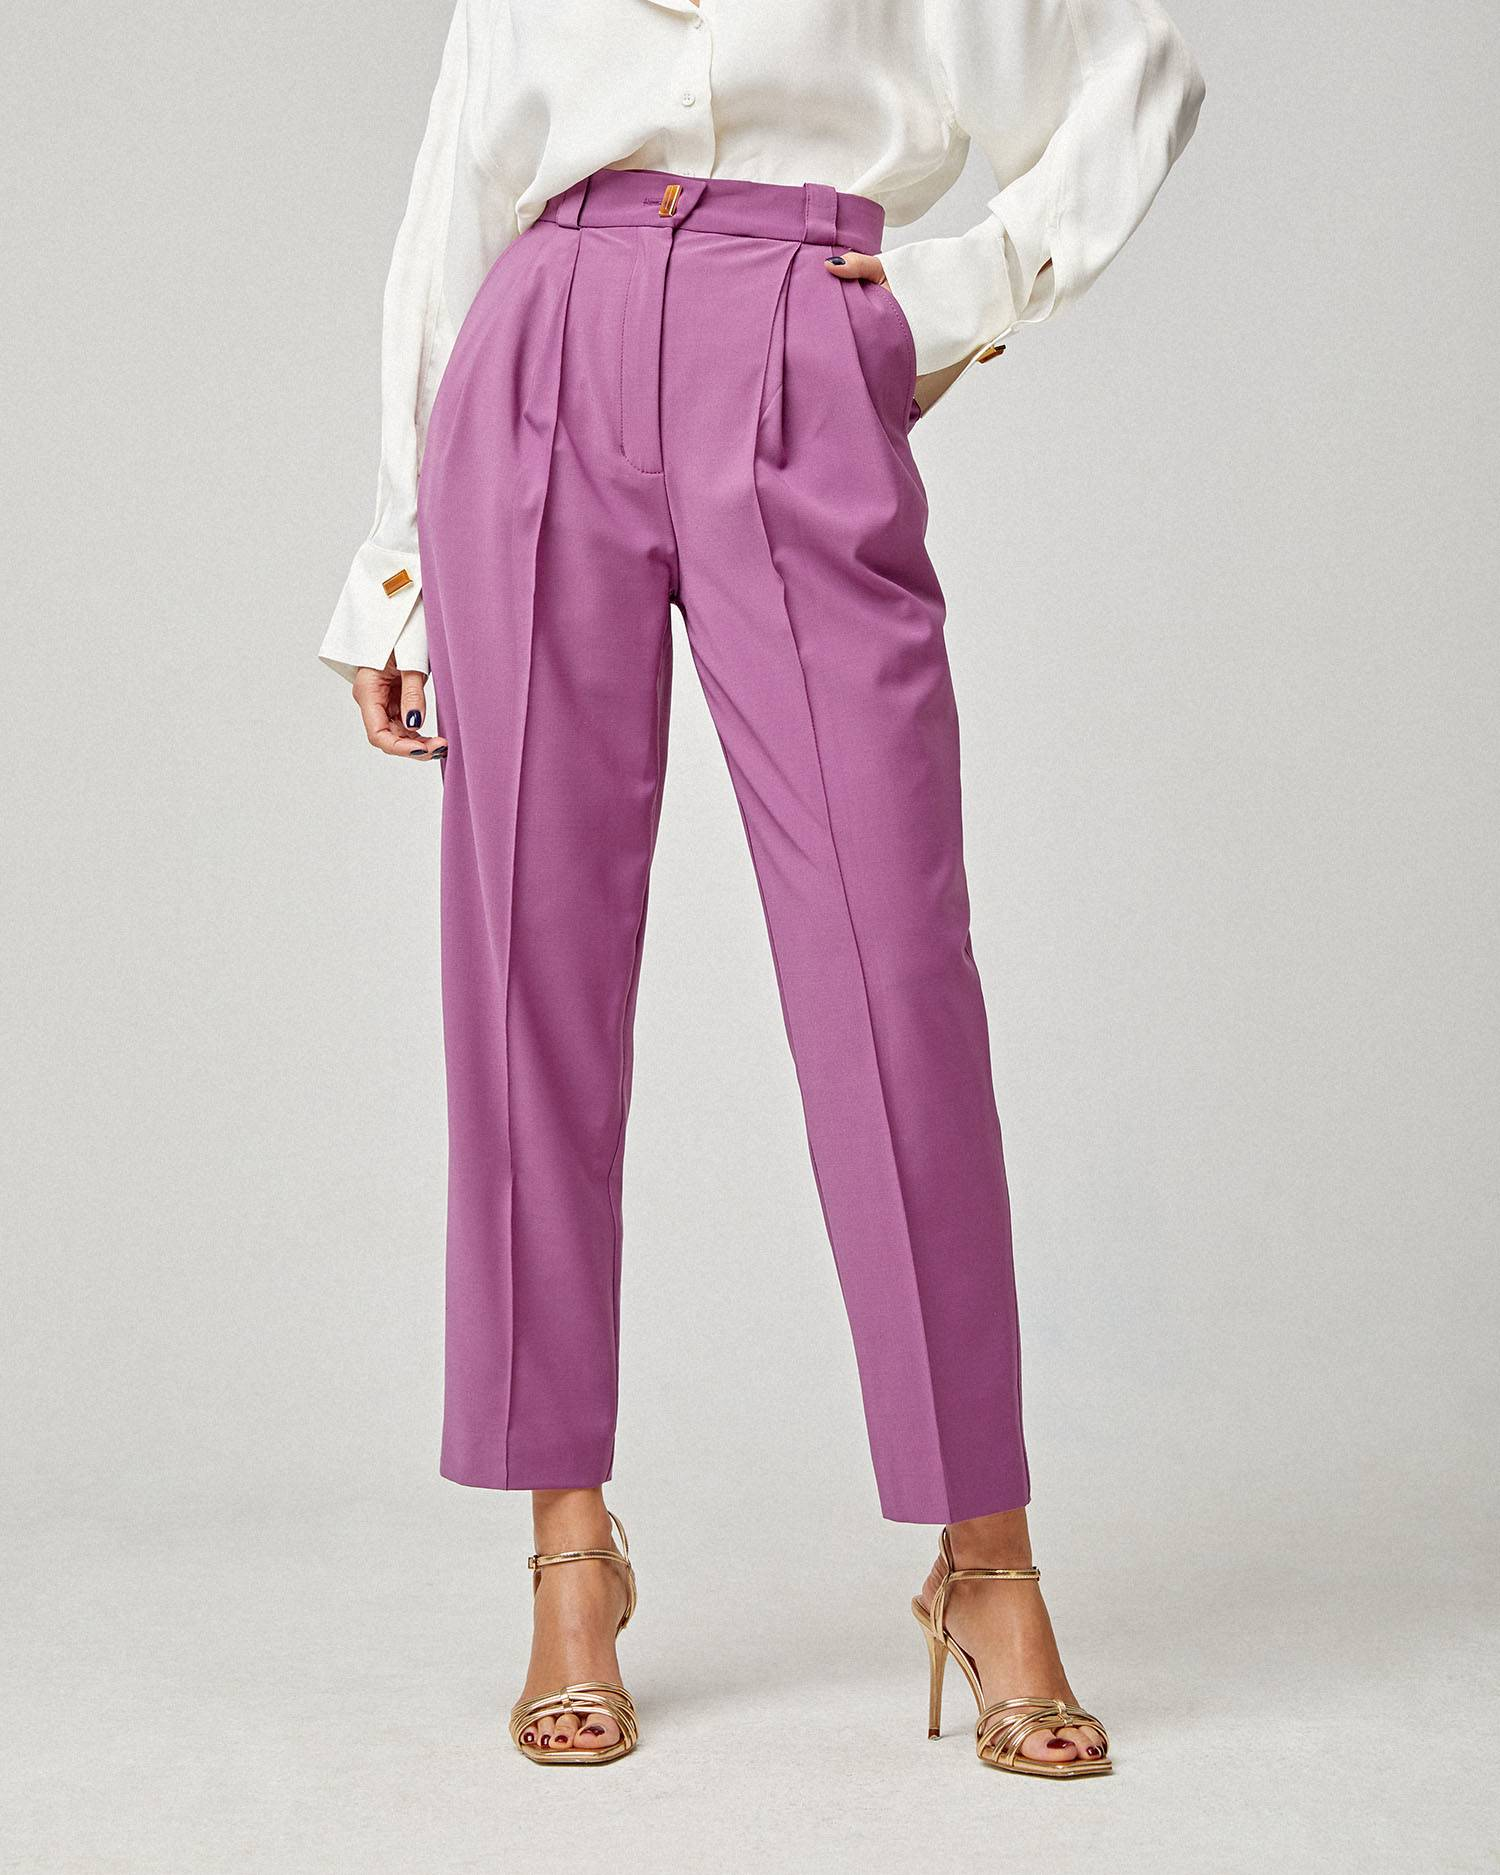 High-waisted pants with pleats